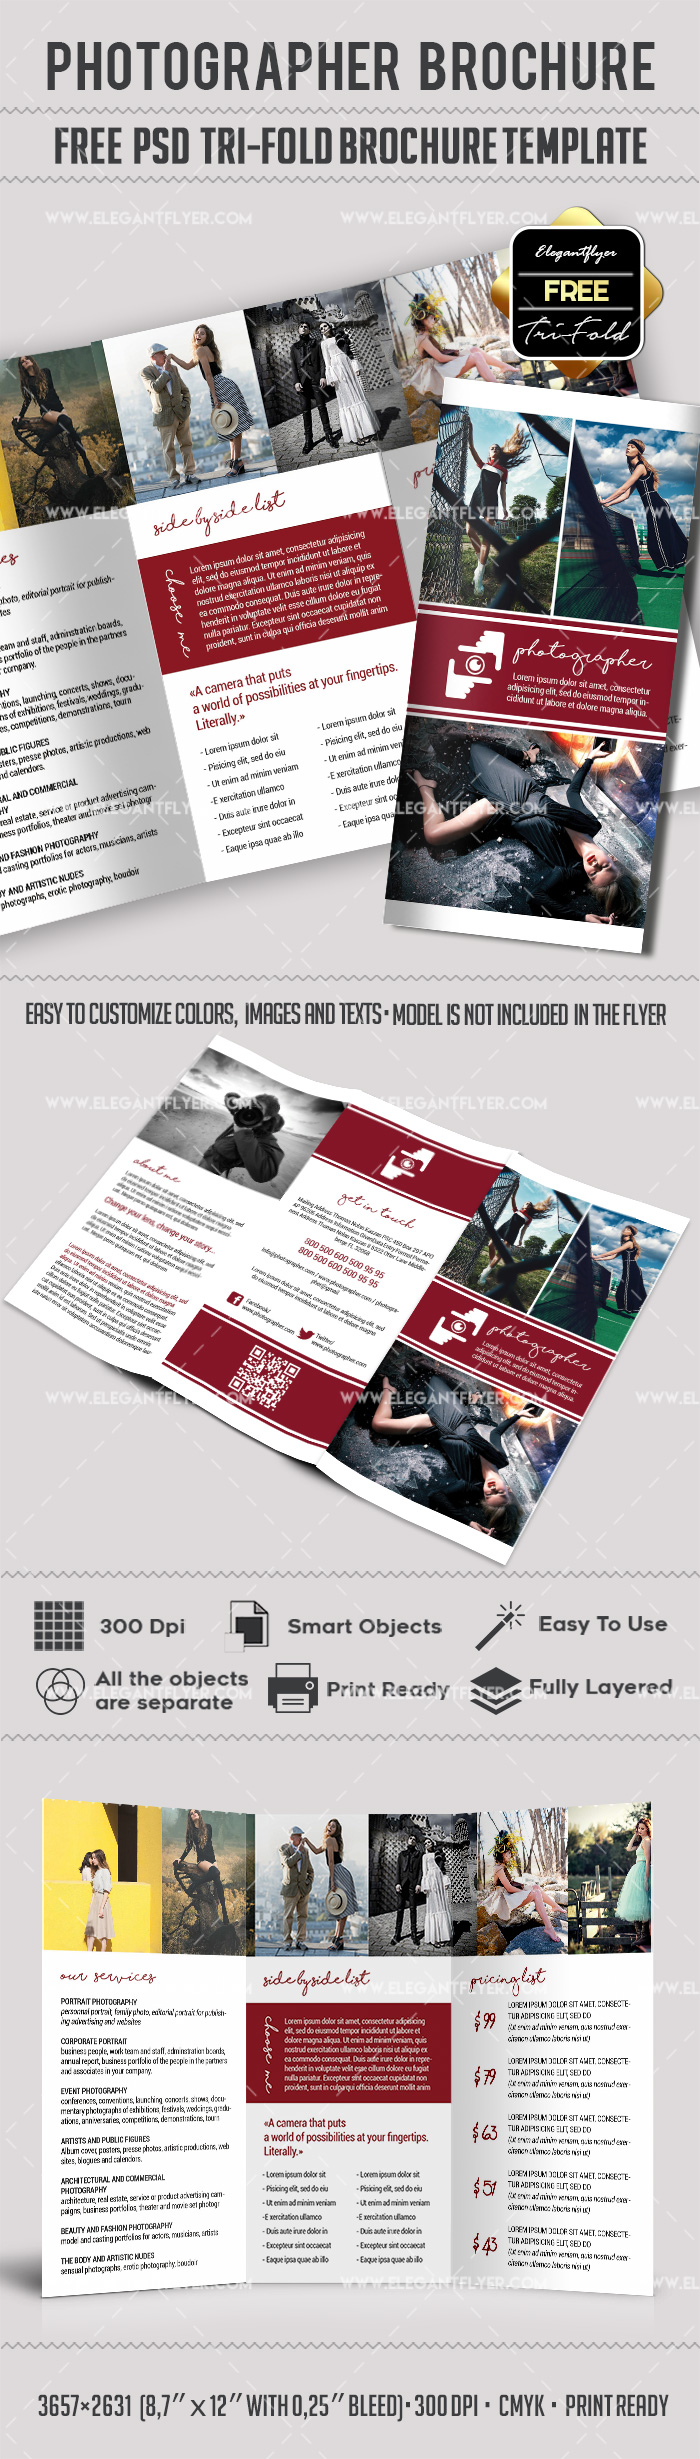 Photography TriFold Brochure Template By ElegantFlyer - Photography brochure templates free